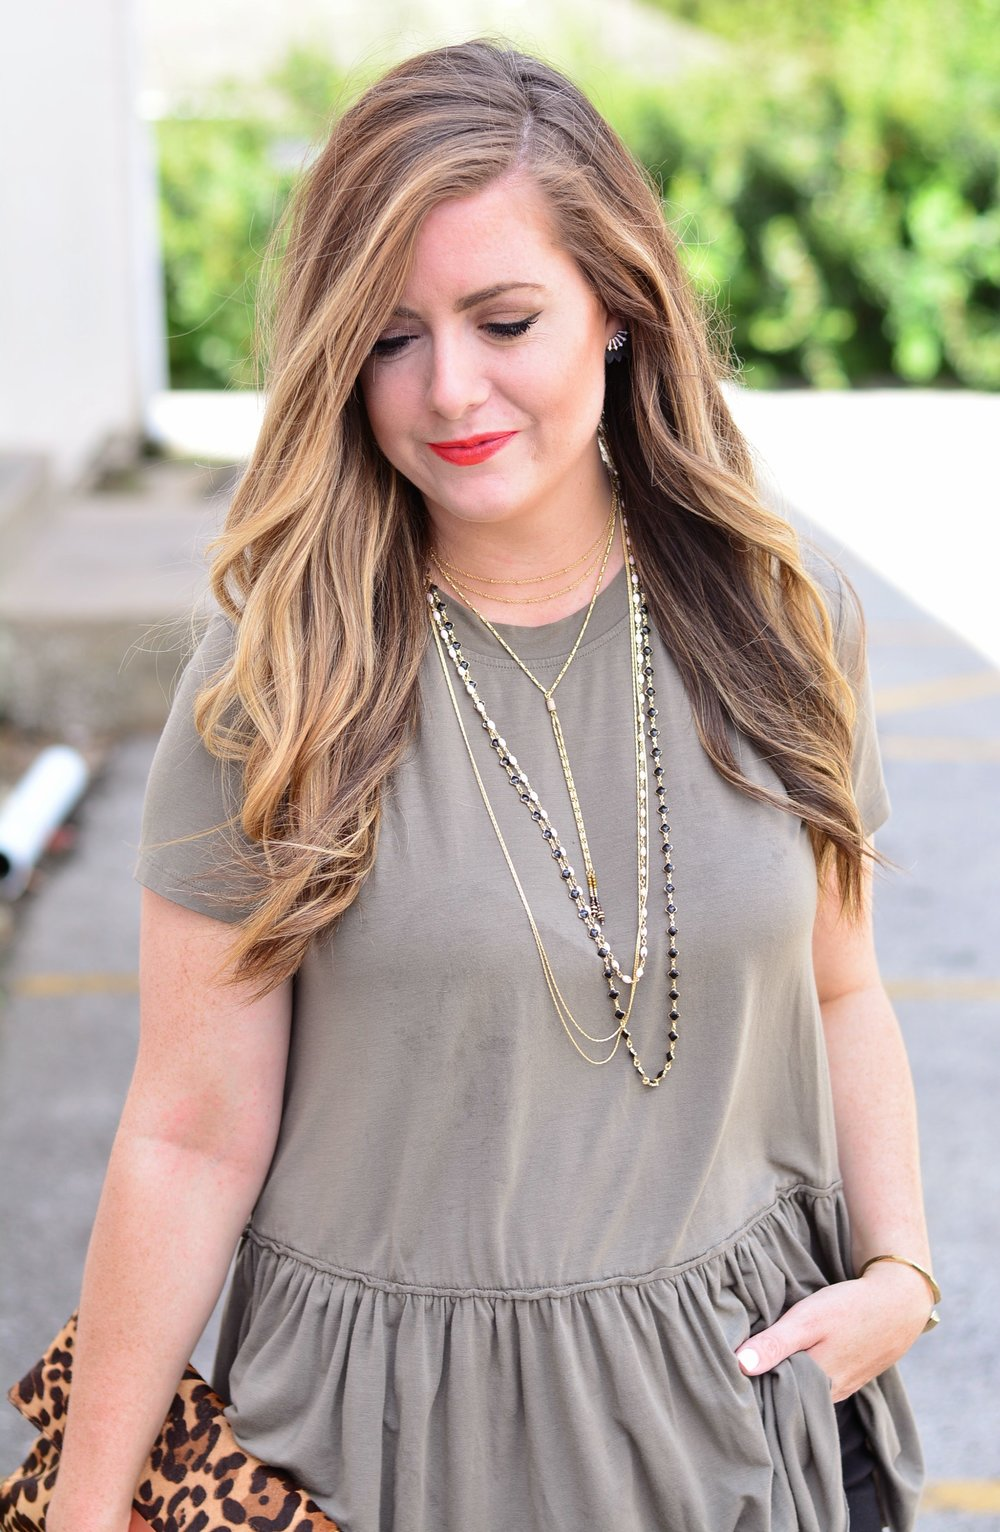 Stella and Dot Terney necklace